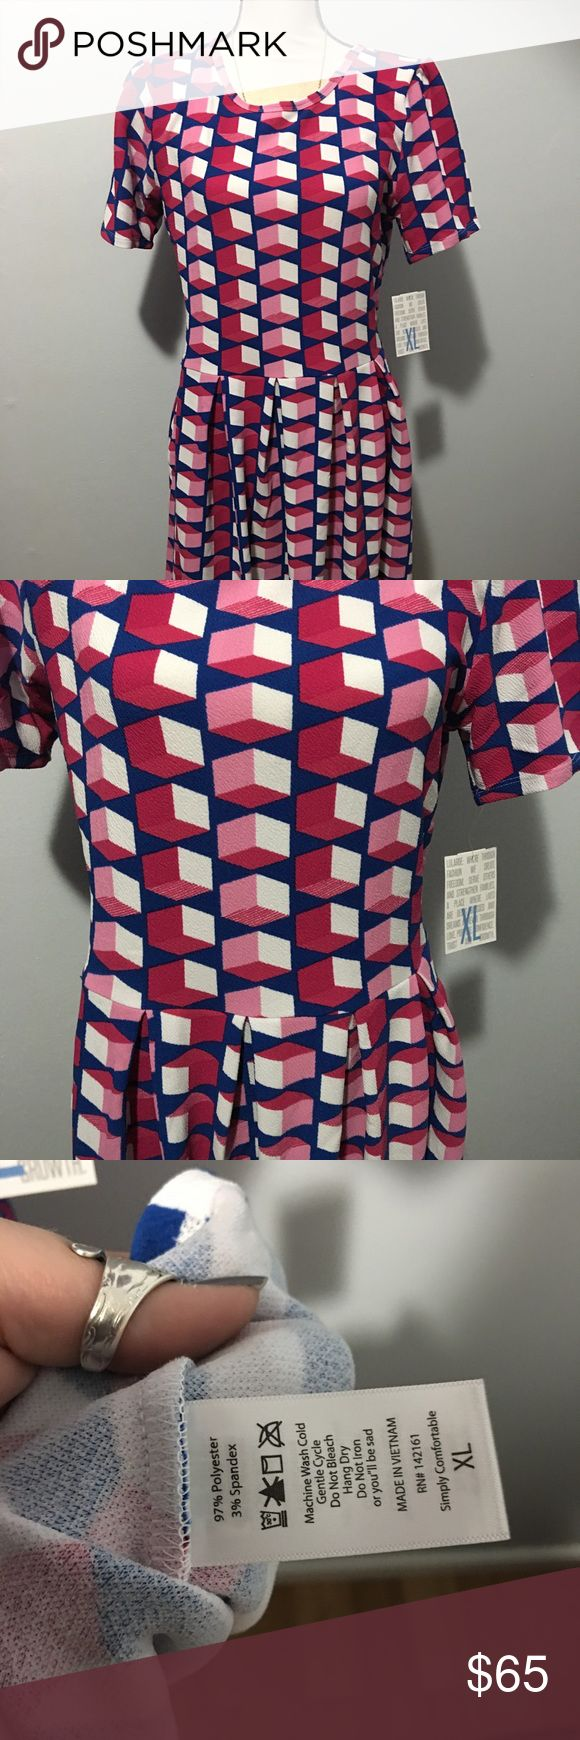 XL Amelia lularoe This XL Amelia lularoe dress is so pretty with blue and pink. New with tags. LuLaRoe Dresses